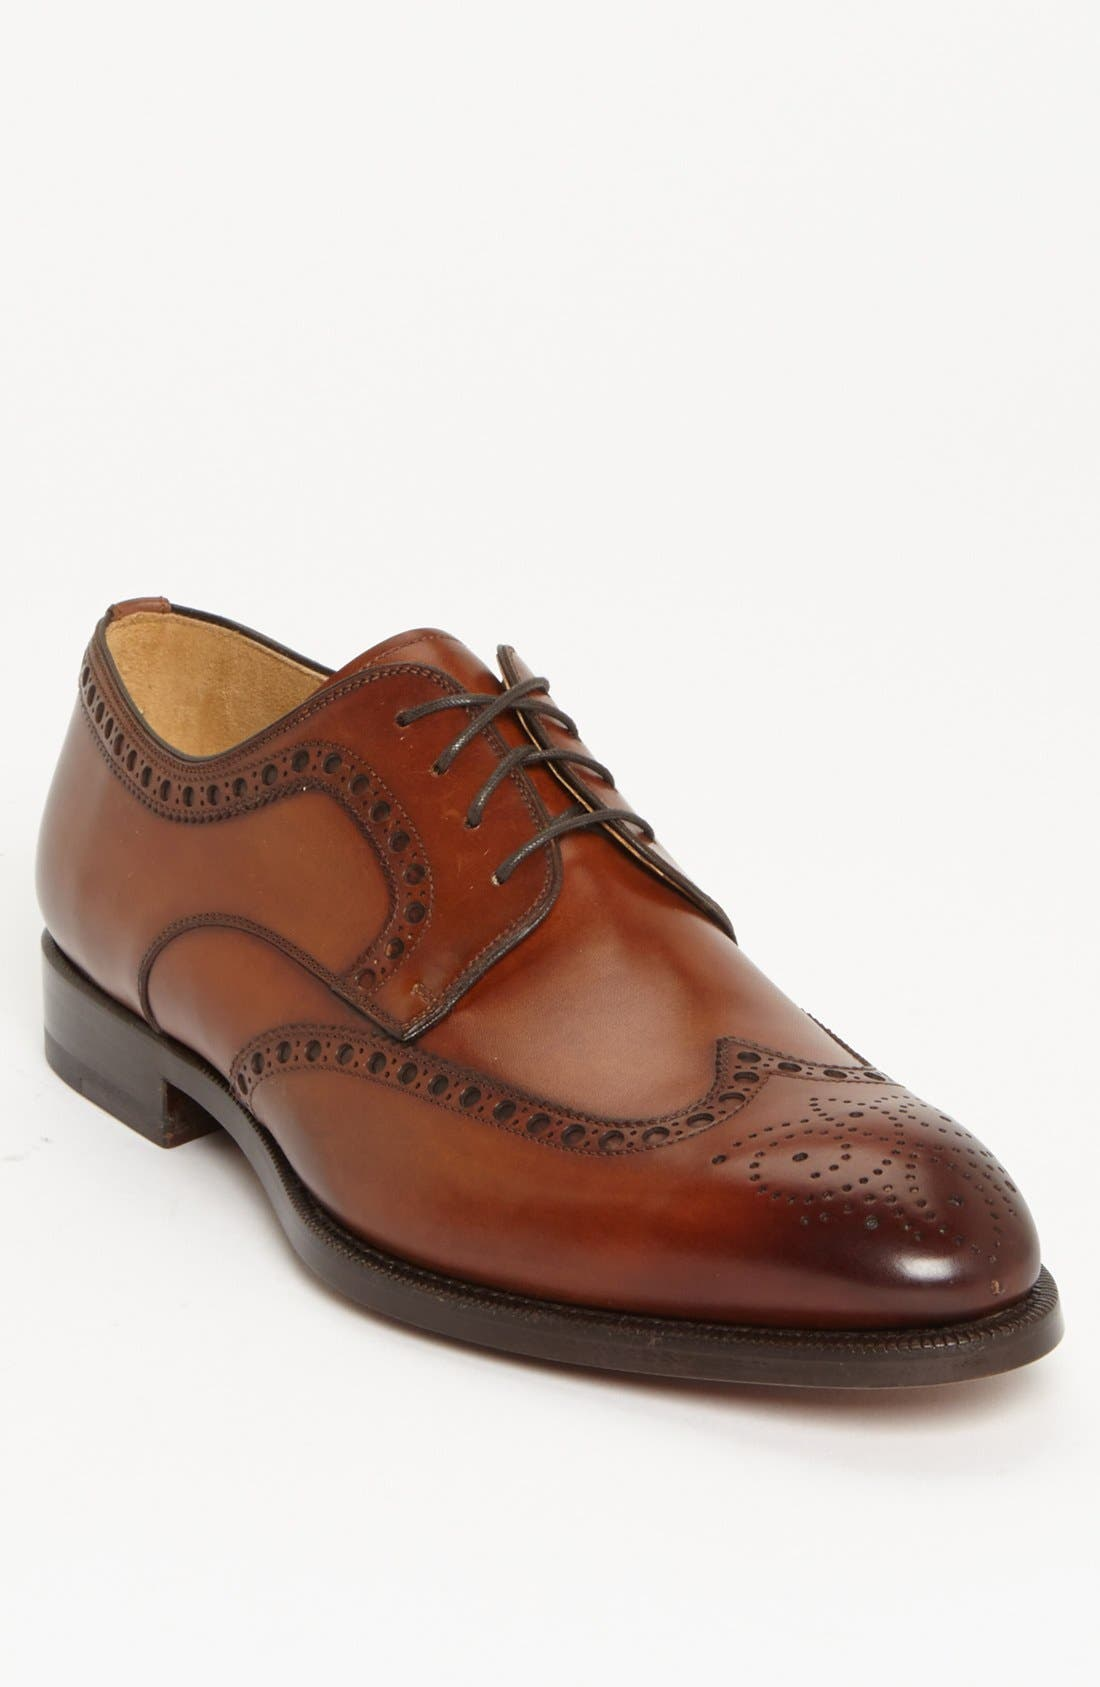 Alternate Image 1 Selected - Magnanni 'Apolo' Wingtip